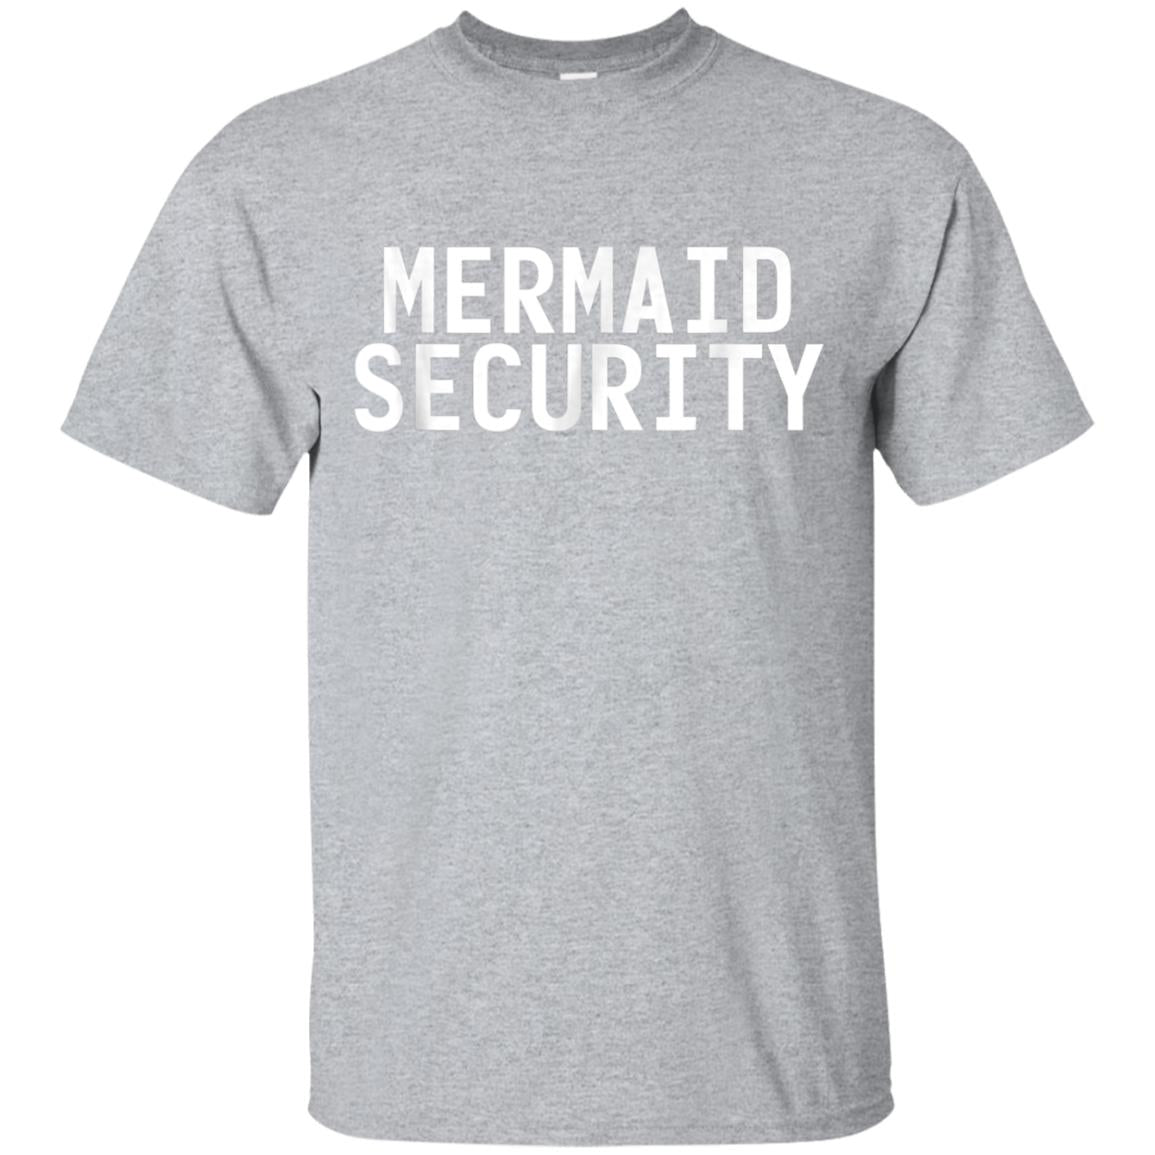 MERMAID SECURITY Shirt Funny Beach Swimming Party Gift Idea 99promocode